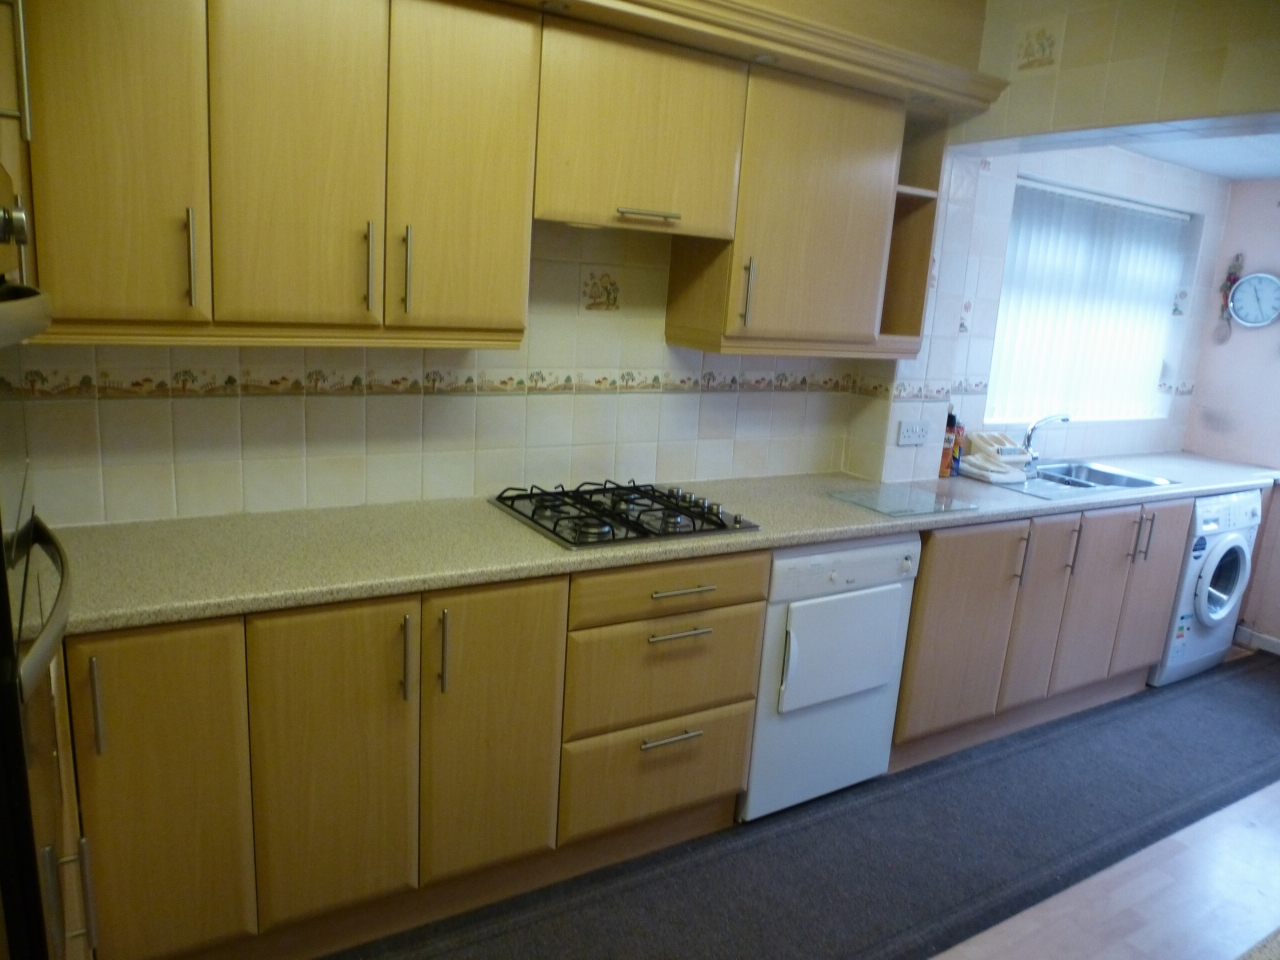 Image 2 of 3 of KITCHEN, on Accommodation Comprising for